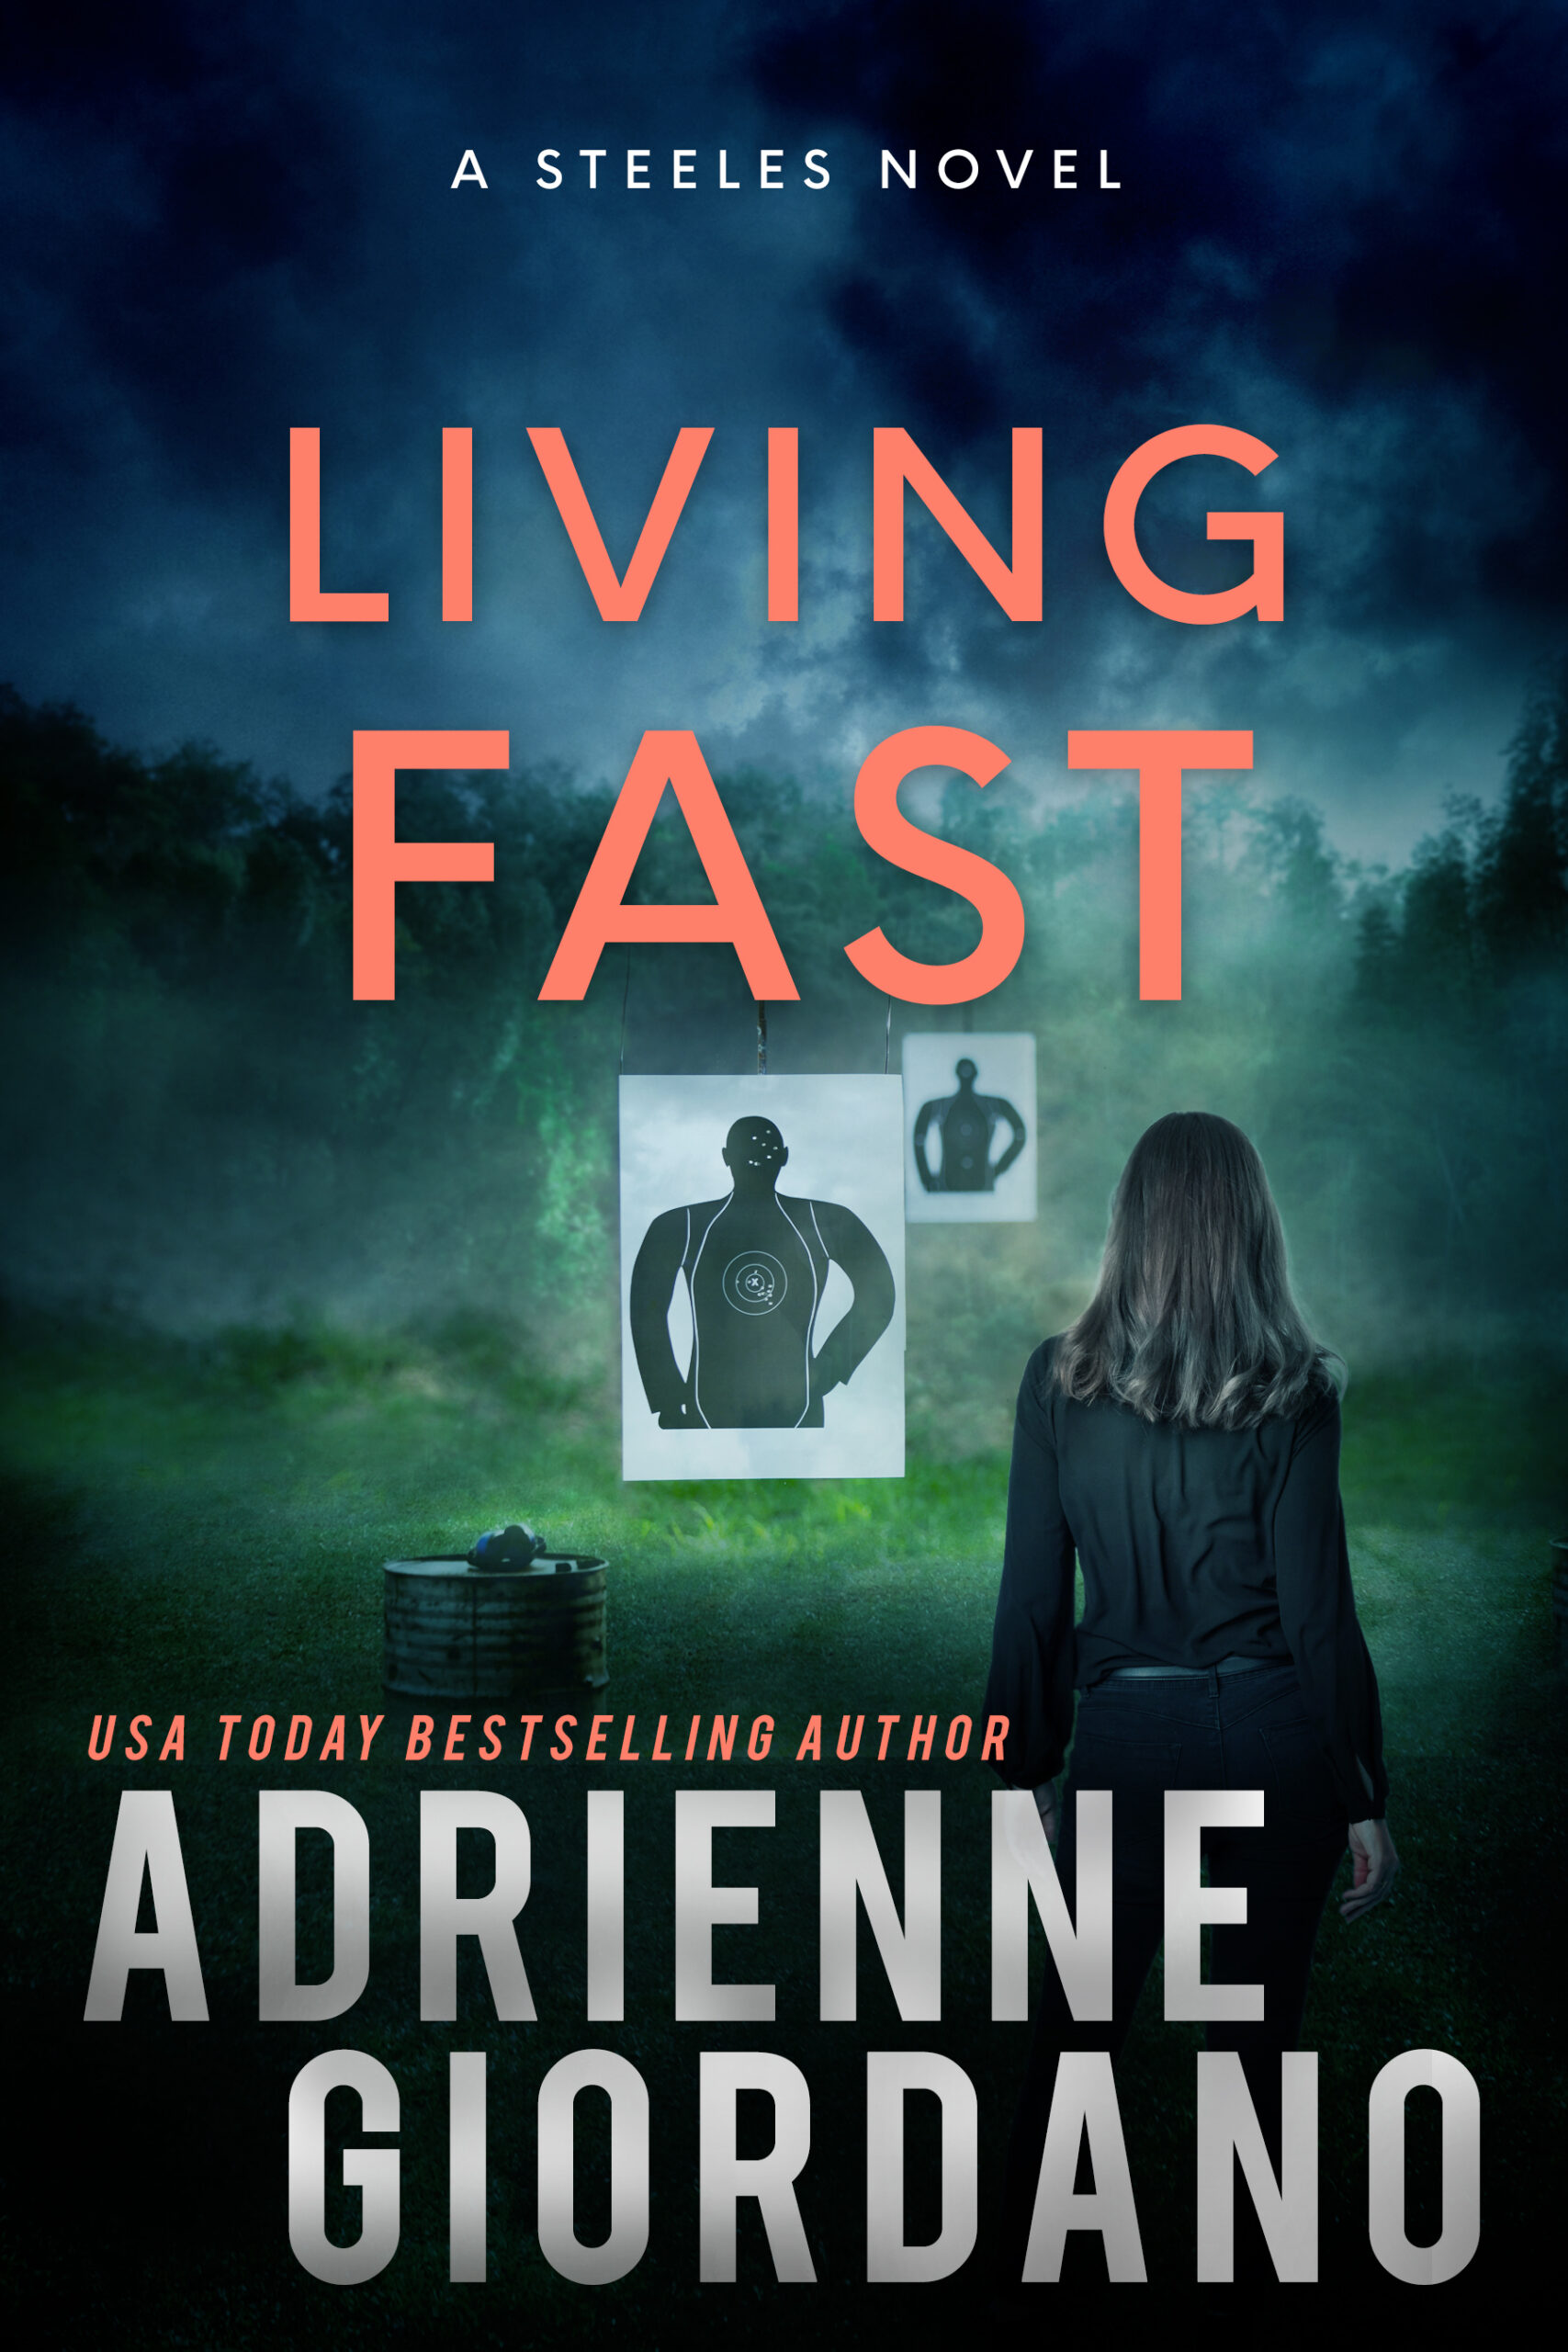 Cover of Living Fast by Adrienne Giordano